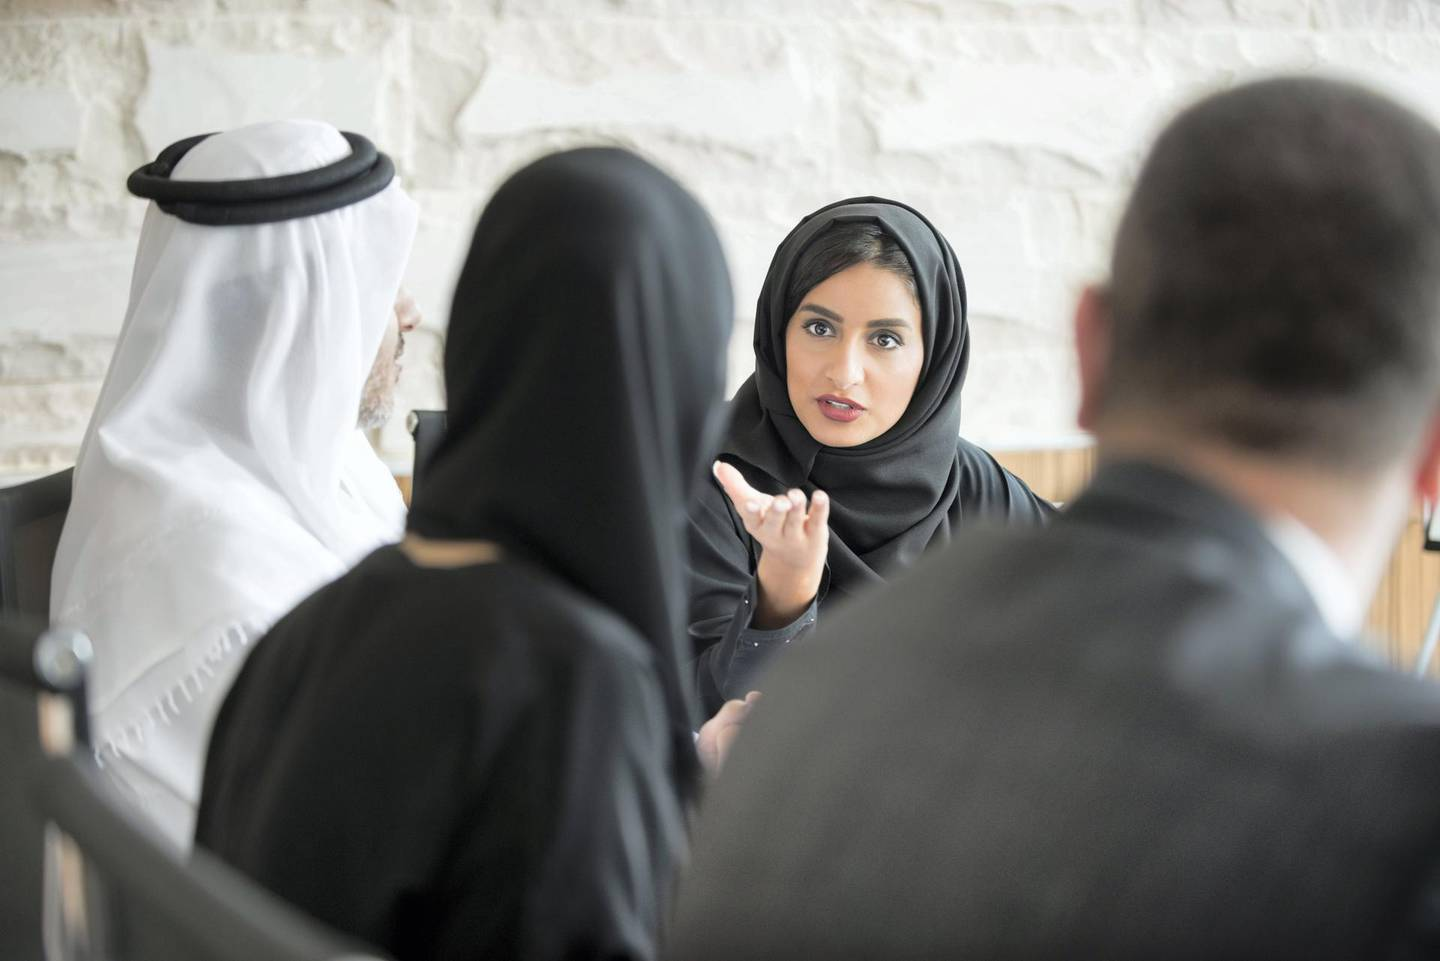 A photo of young and confident Arab businesswoman discussing in a meeting. Emirati woman wearing traditional abaya. Middle Eastern professional female is gesturing towards colleague while sitting in board room meeting.